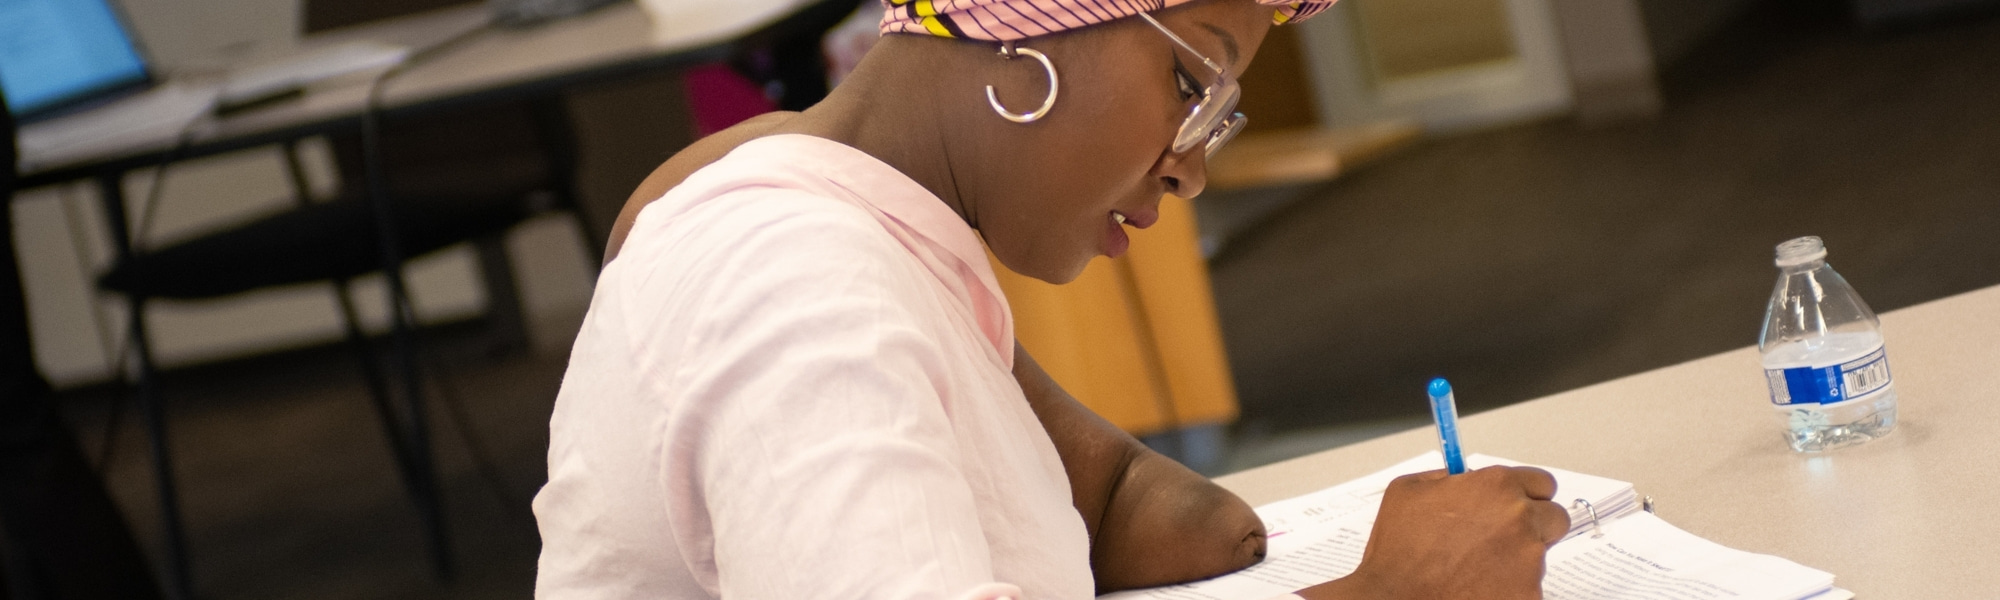 A woman wears a thoughtful expression while writing in a notebook. She has a pink yellow and pink turban, dark-toned skin, silver hoop earrings and is an upper limb amputee.